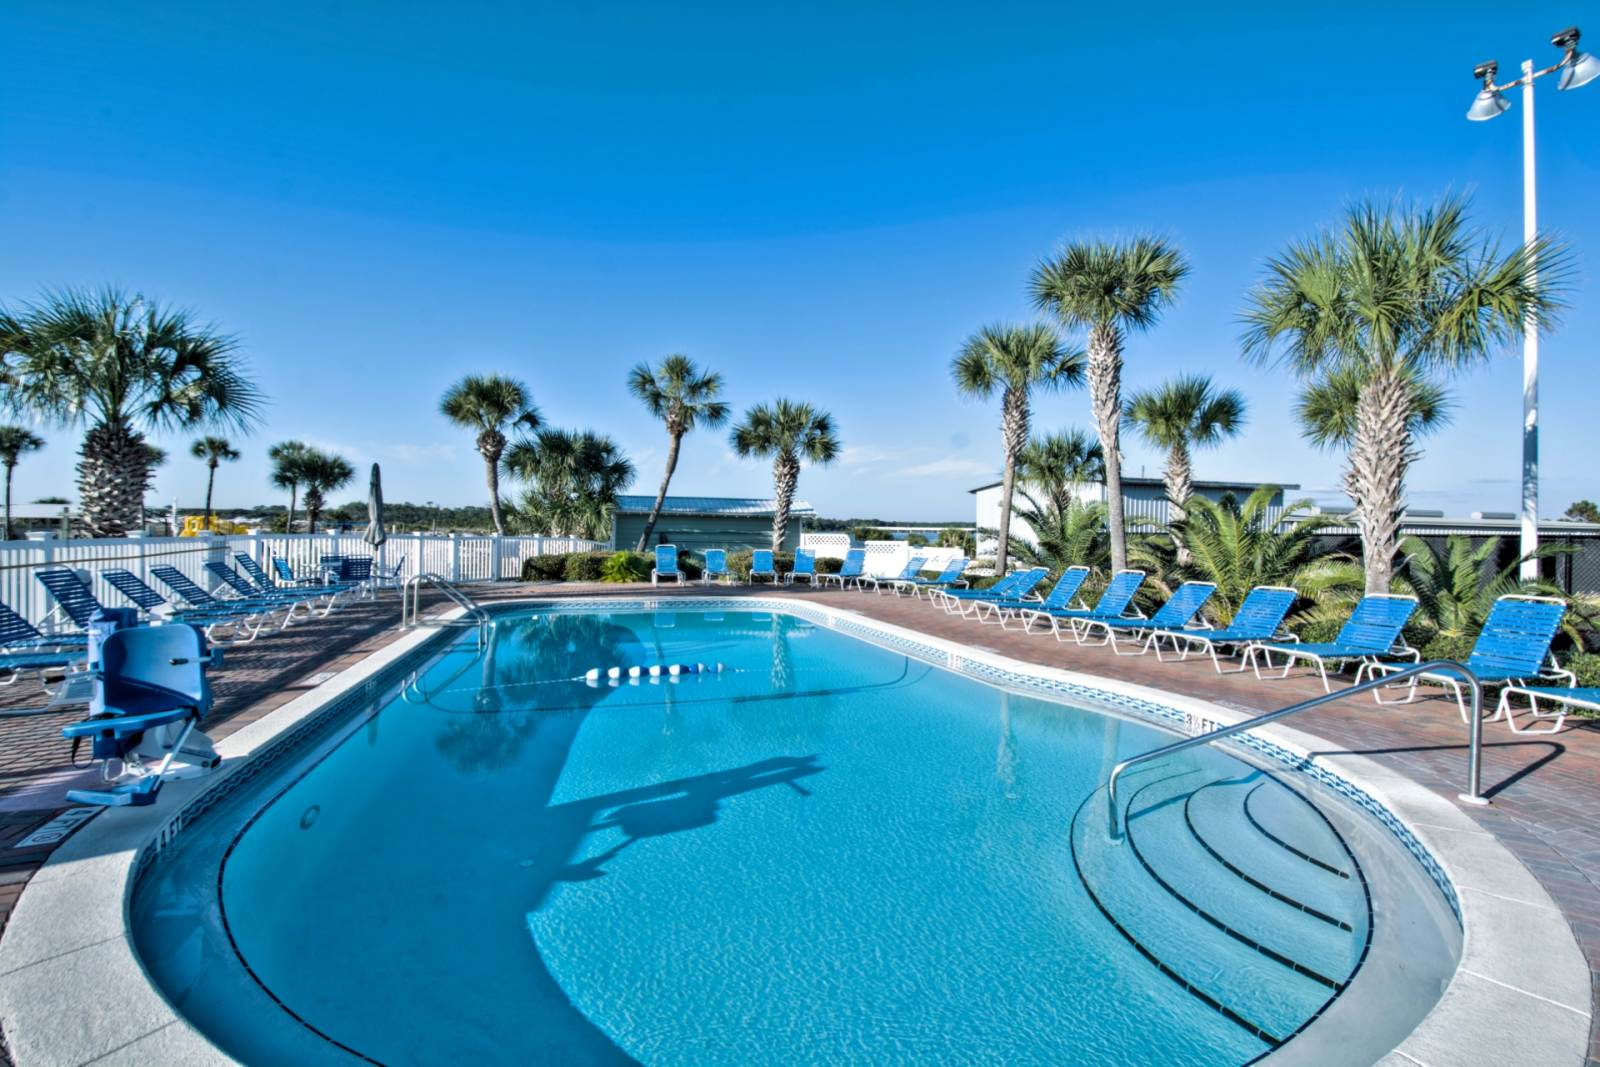 Panama City Beach Vacation Al Pinnacle Port C1 302 Gulf Front Condo Resort Pools Steps To Family And Kid Friendly